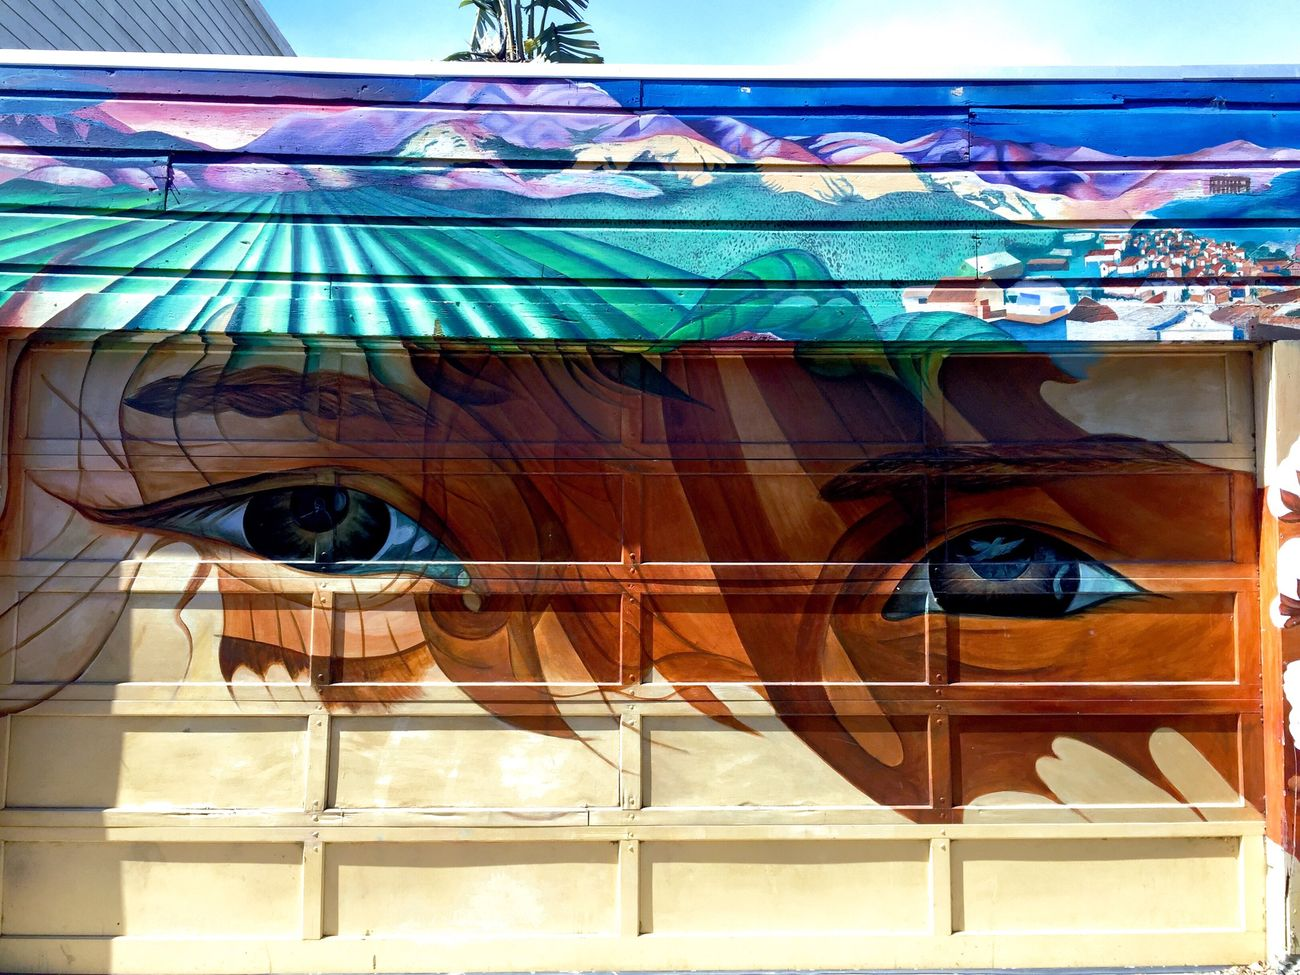 Eyes Without a Face. IPhoneography Mission Murals